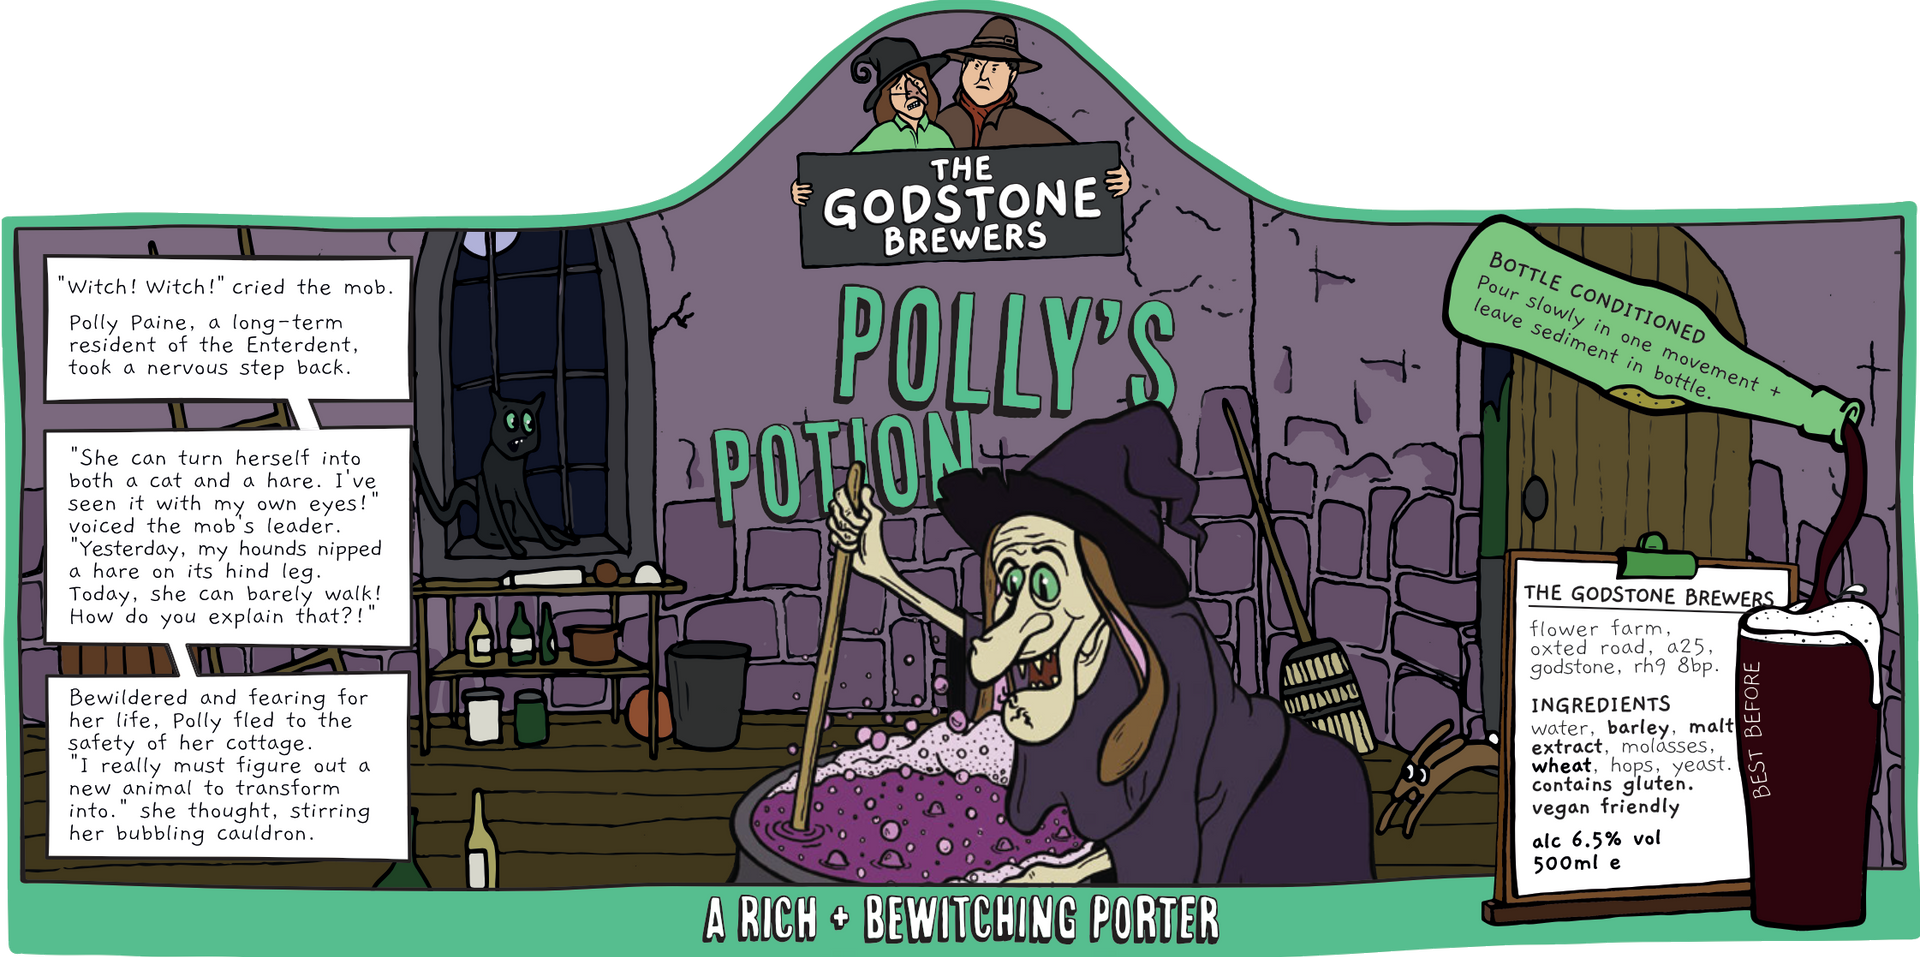 Polly's Potion